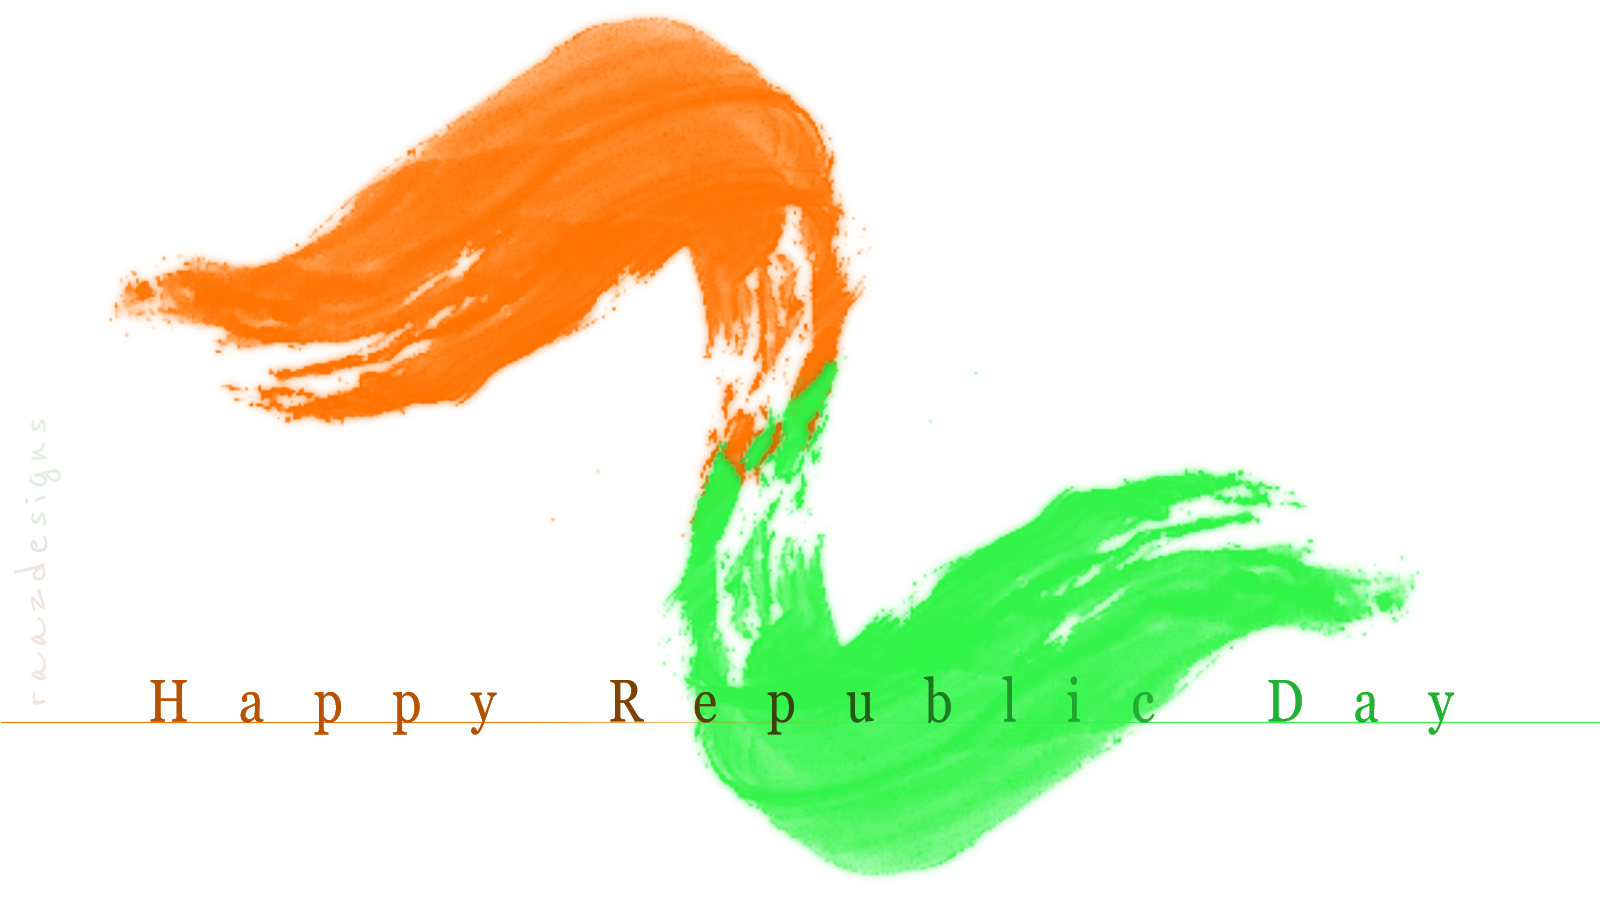 http://4.bp.blogspot.com/-KB7p6AFlI1s/TyDrM0vW01I/AAAAAAAAED4/J28RMYxI3d0/s1600/happy%20republic%20day%202012.jpg